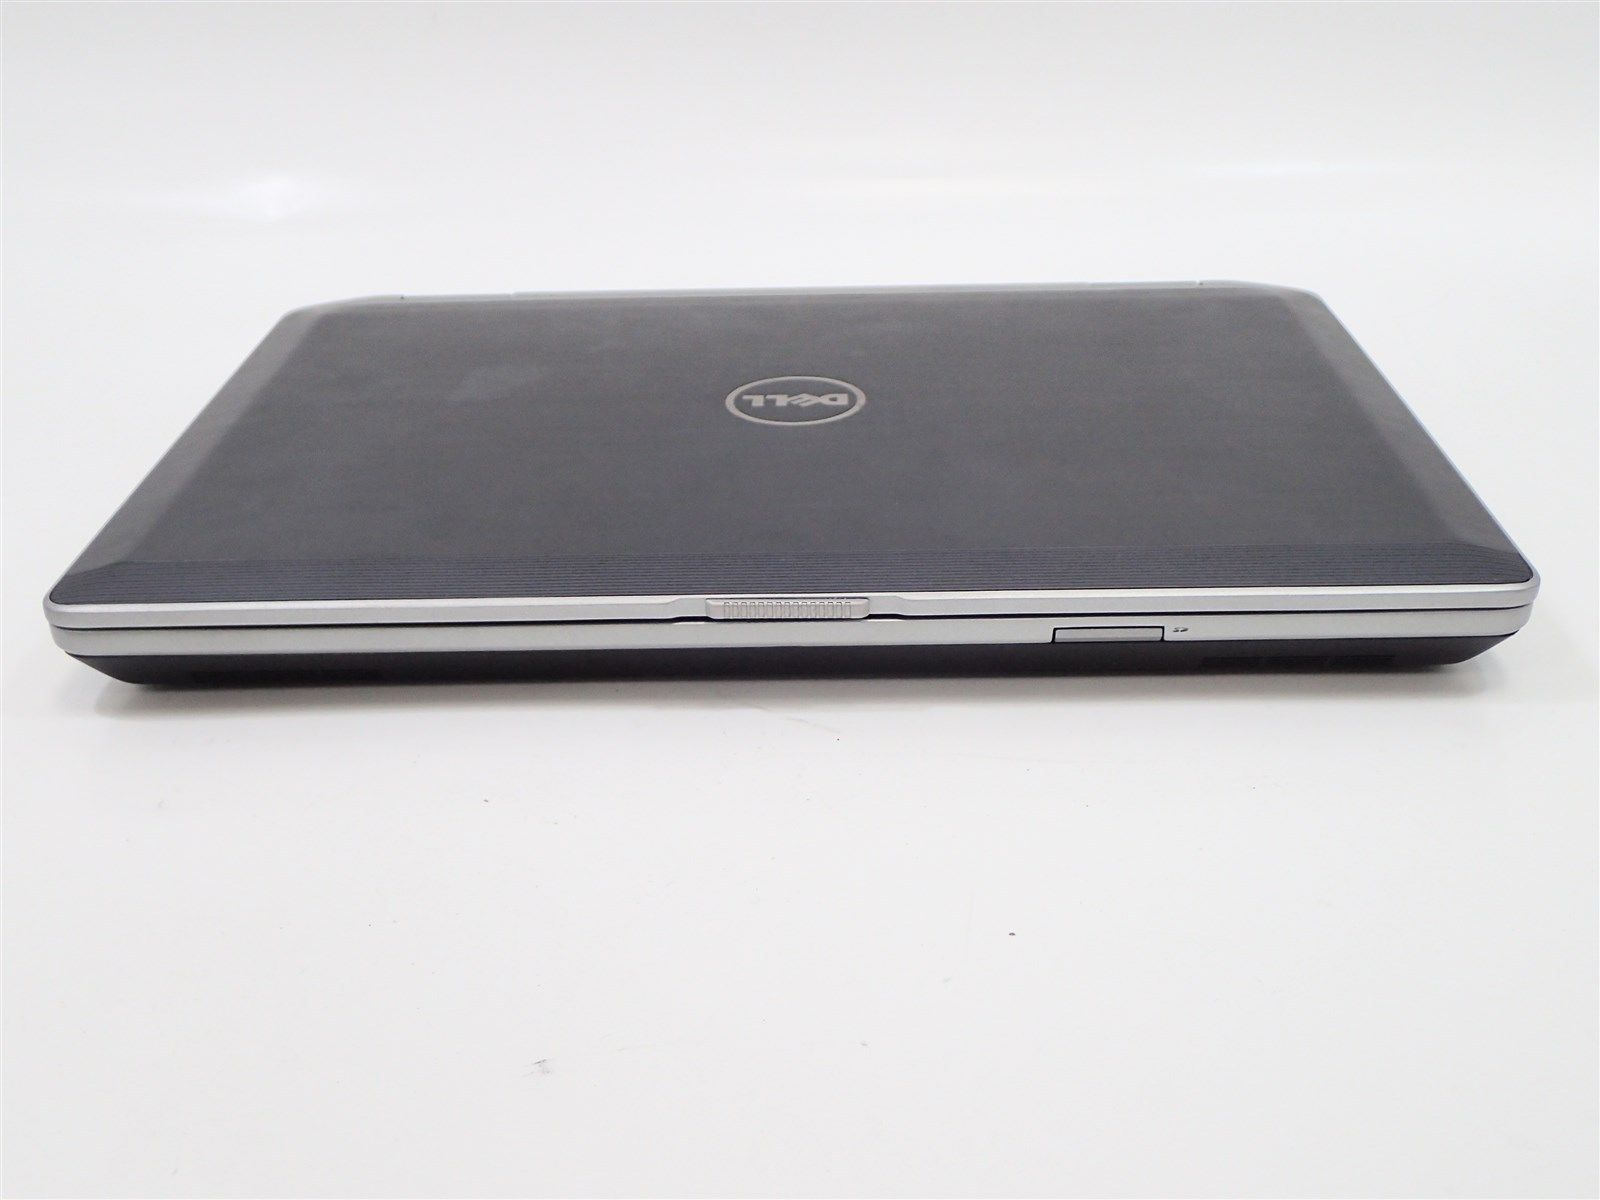 Dell Laptop Latitude E6420 14″ Notebook Intel Core i5 8GB Ram 1TB (1000GB)  HDD Windows 7 Professional | Obumex